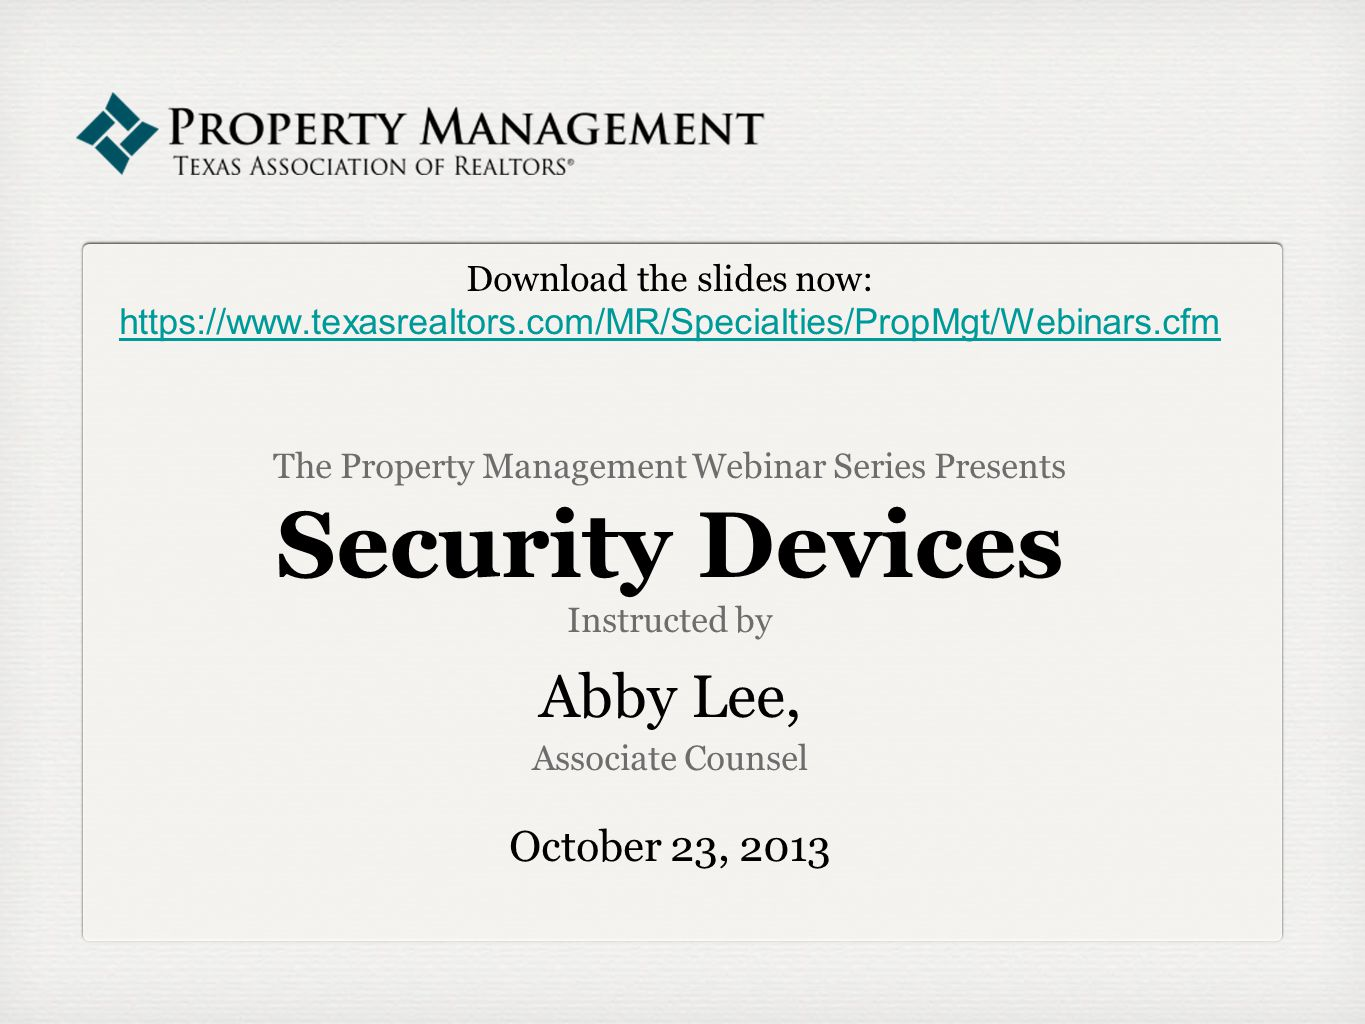 Download the slides now: https://www.texasrealtors.com/MR/Specialties/PropMgt/Webinars.cfm The Property Management Webinar Series Presents Security Devices Instructed by Abby Lee, Associate Counsel October 23, 2013 https://www.texasrealtors.com/MR/Specialties/PropMgt/Webinars.cfm